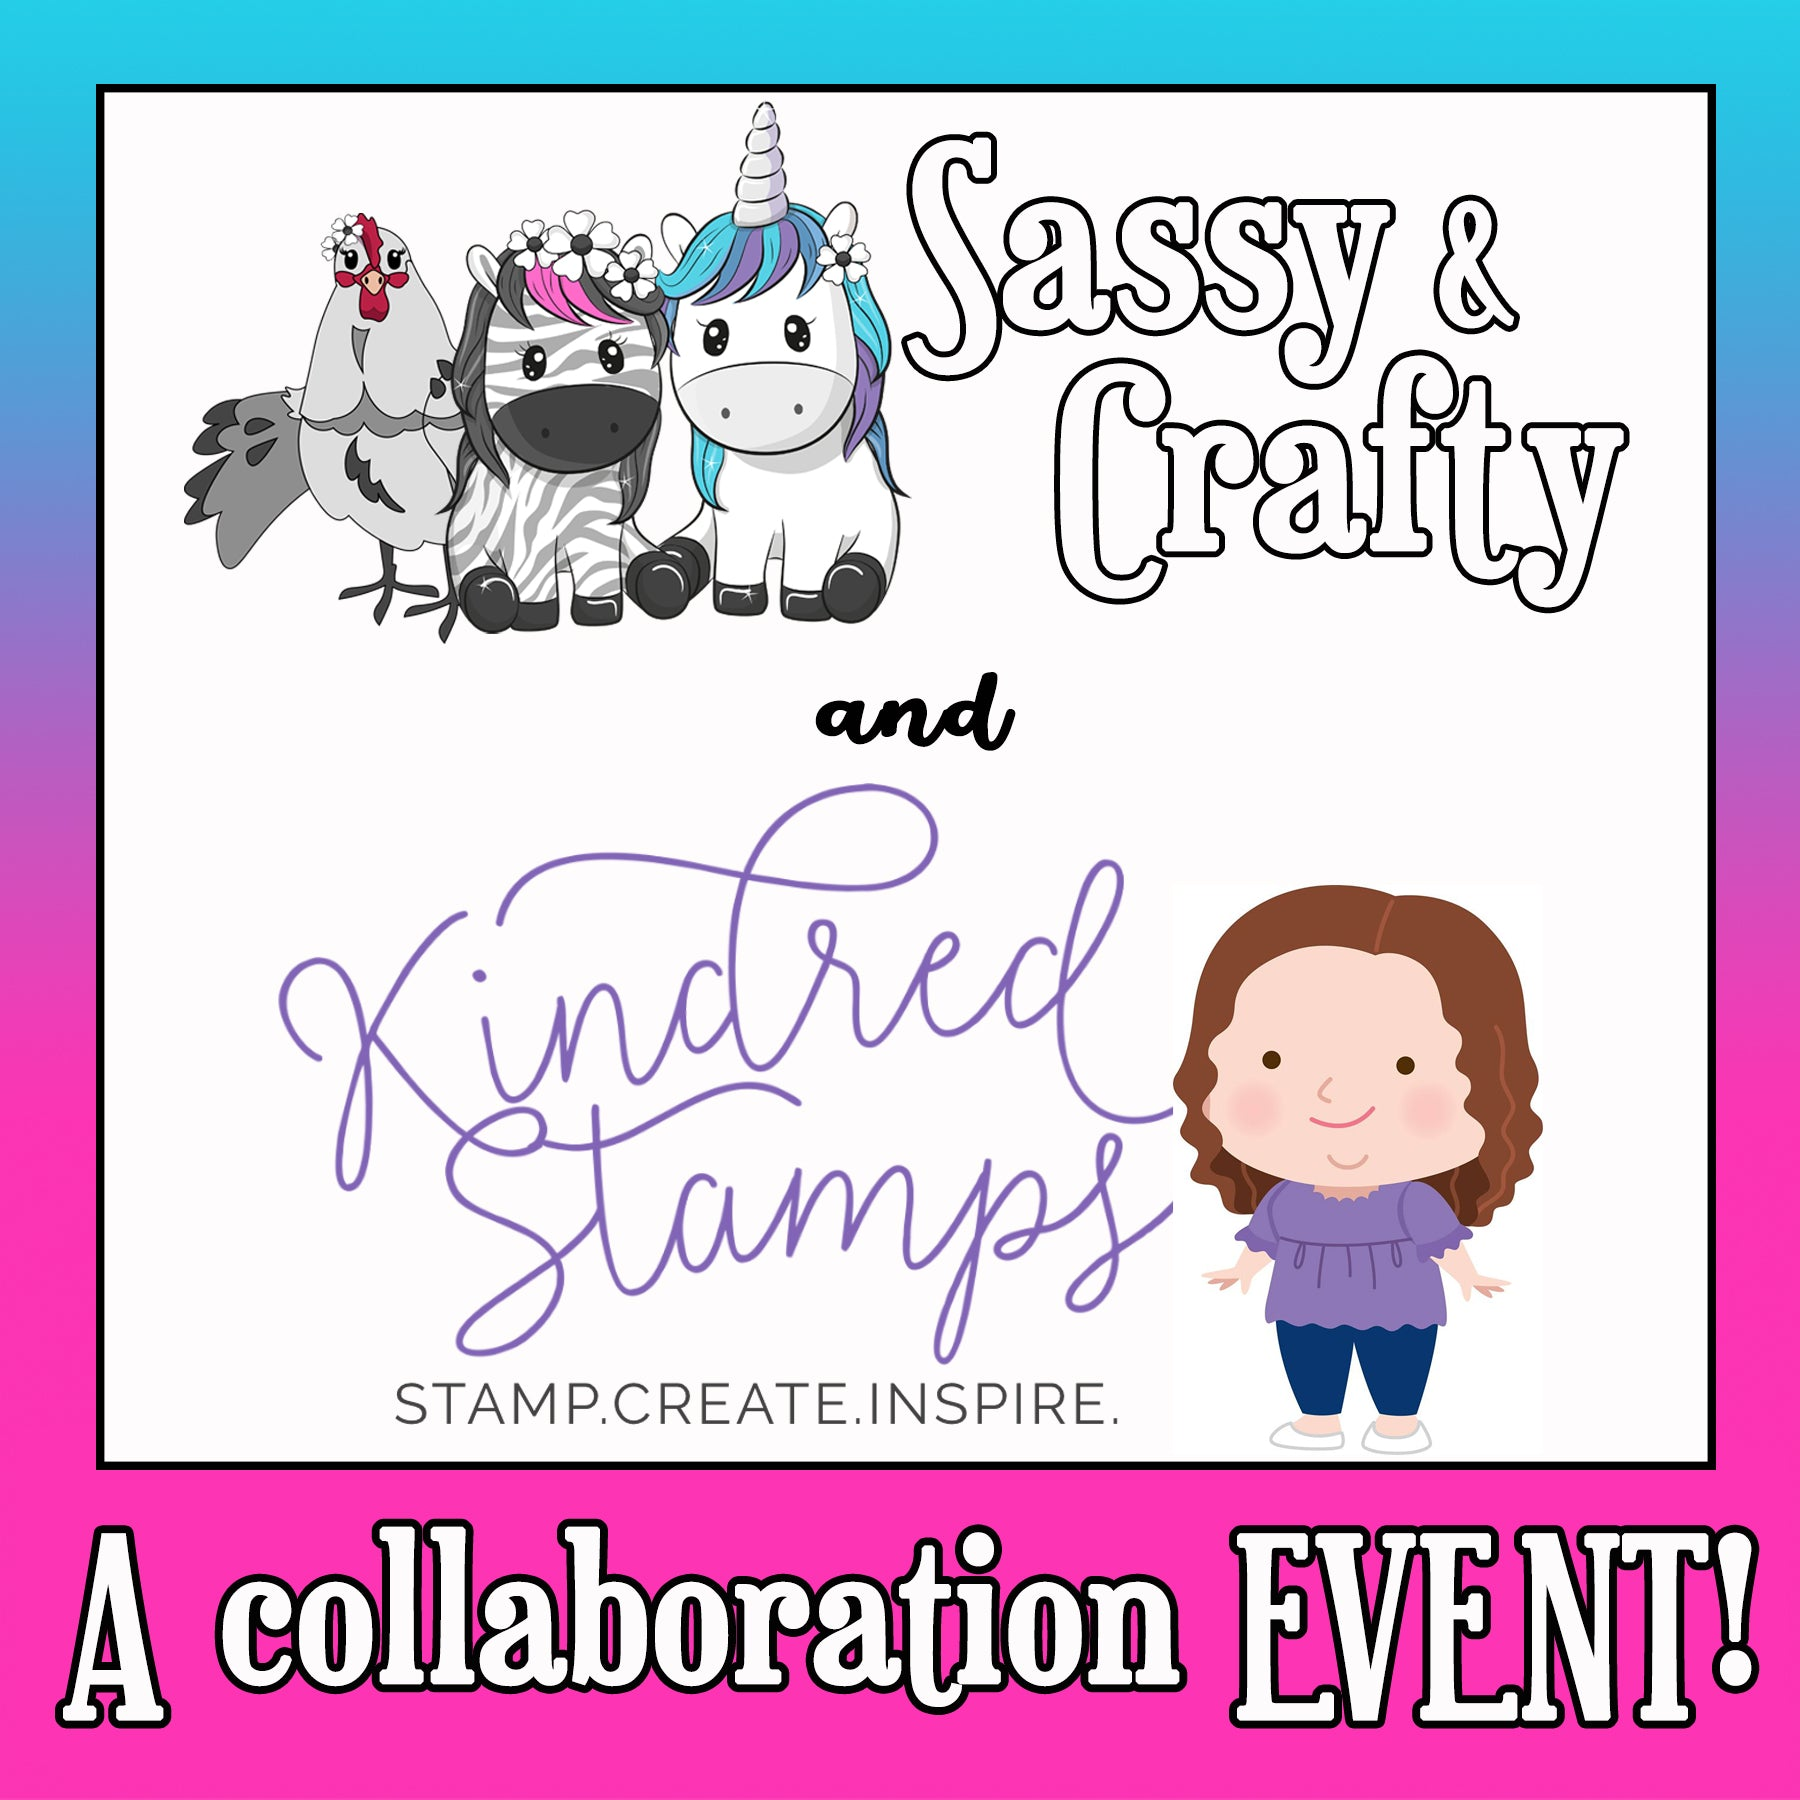 Collaboration with Sassy & Crafty